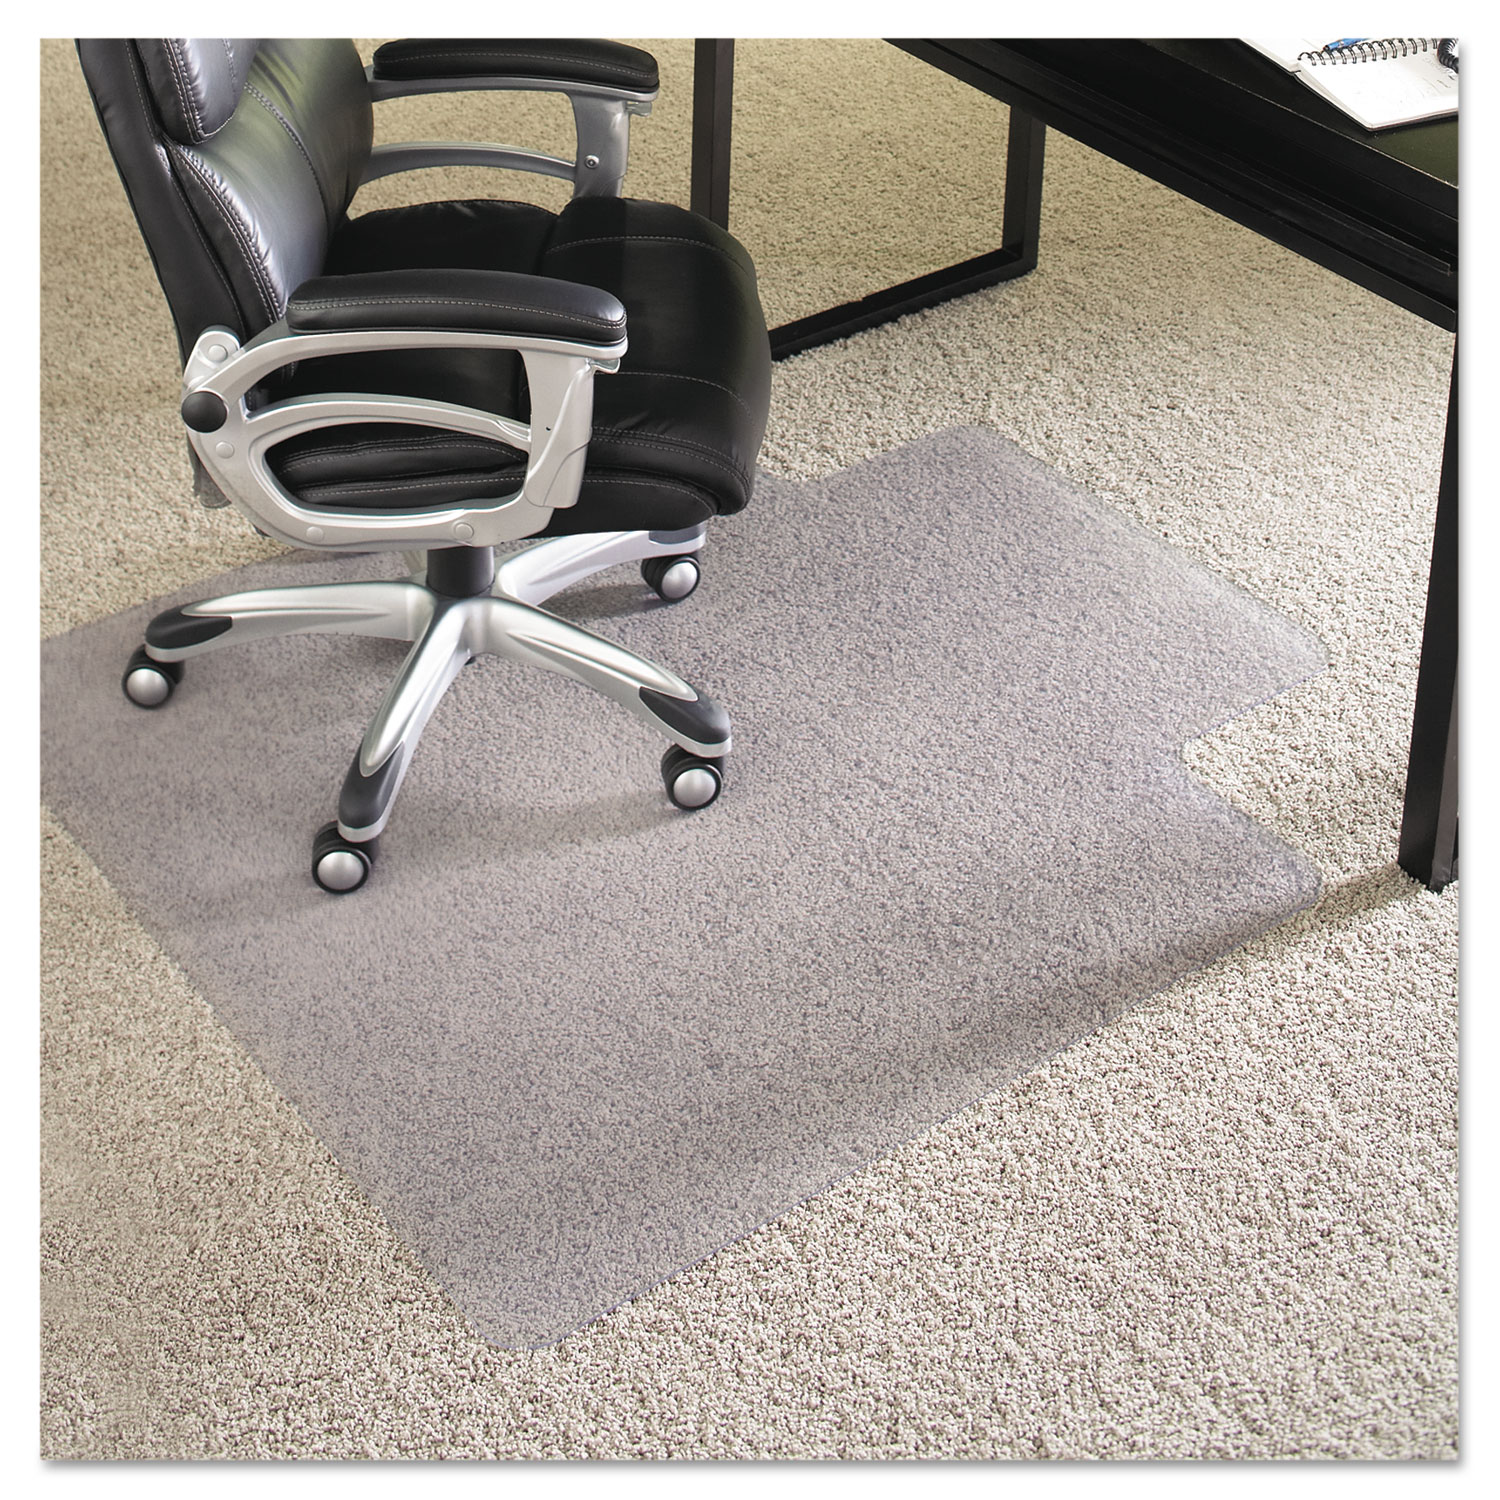 ES Robbins® EverLife® Intensive Use Chair Mat for High to Extra-High Pile Carpet & Look at EverLife® Intensive Use Chair Mat for High to Extra-High ...